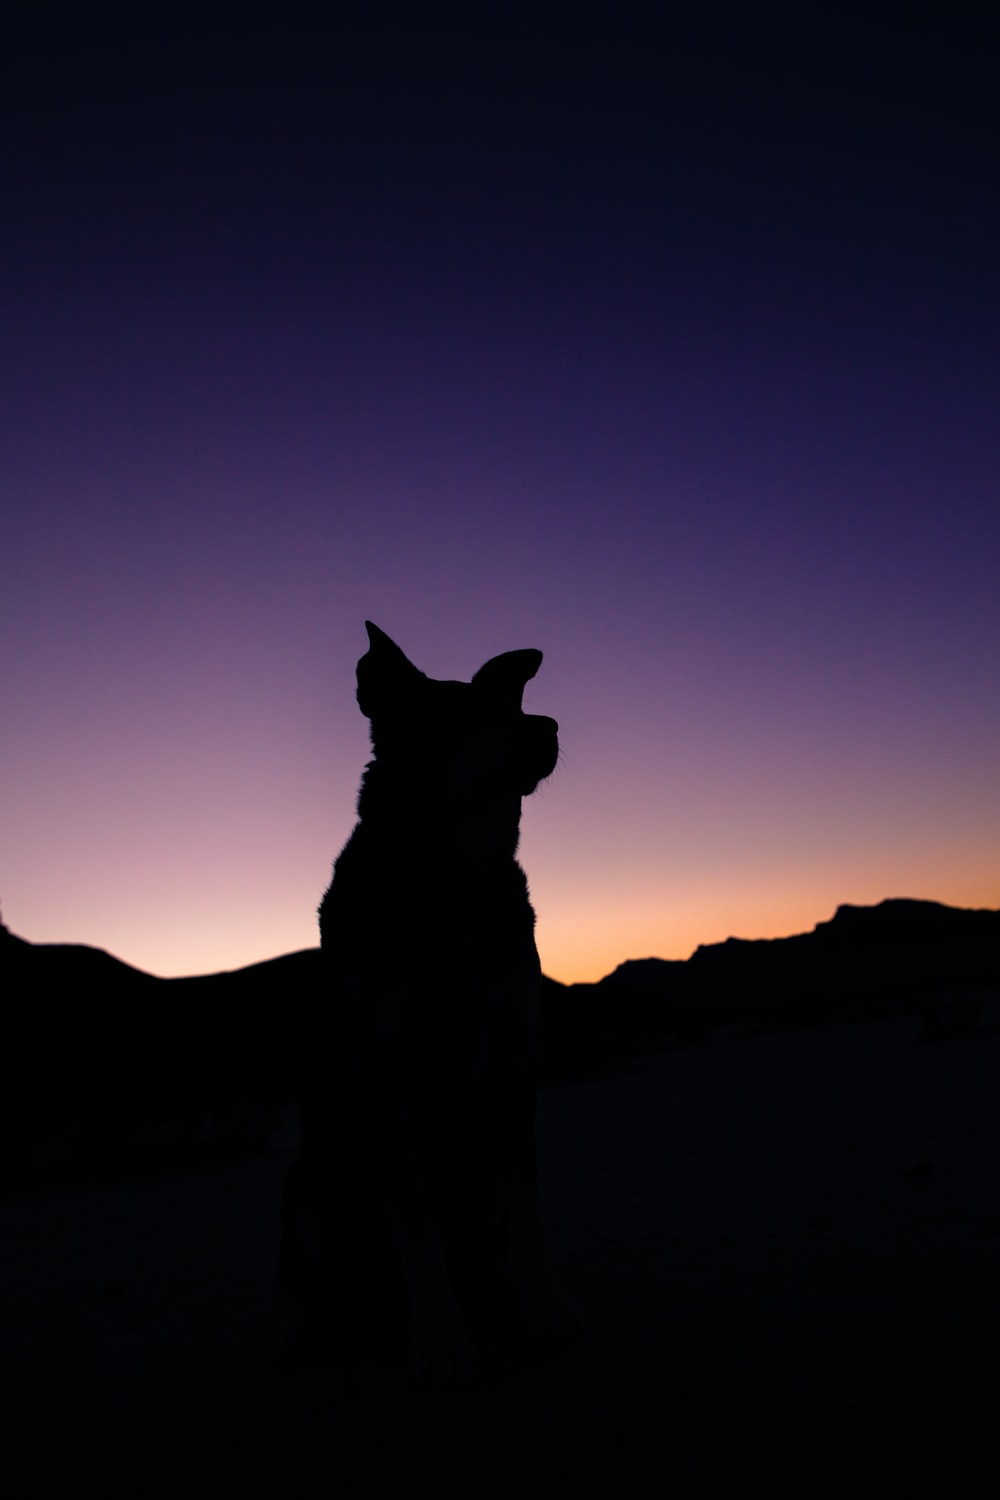 silhouette of dog during twilight